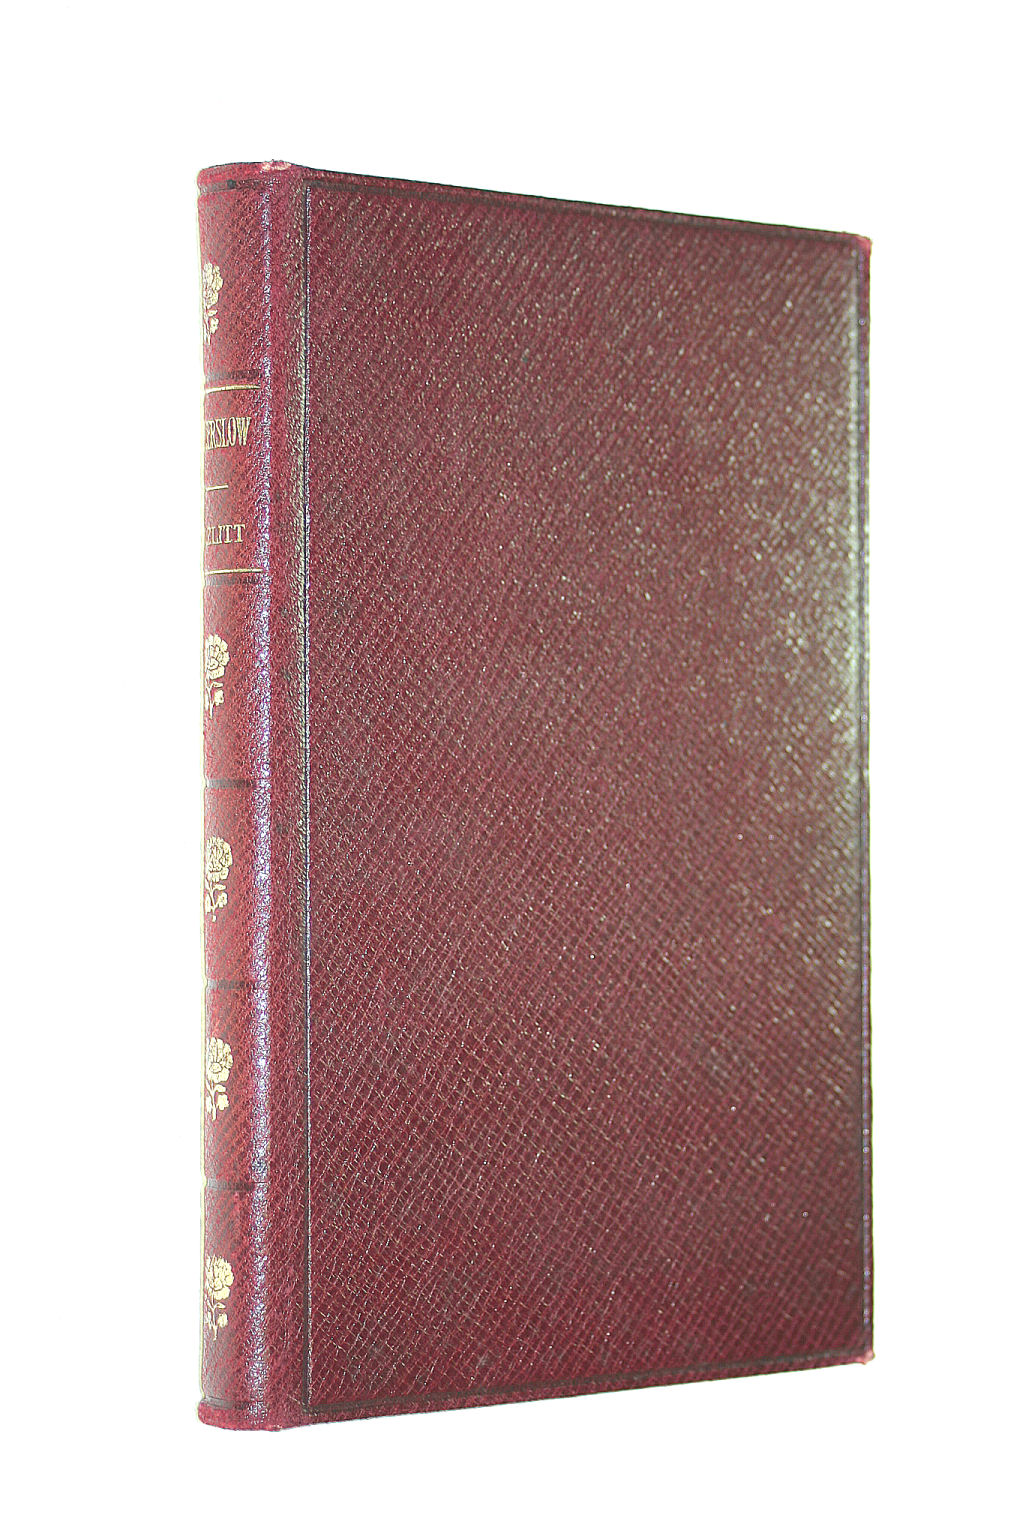 Image for Winterslow: Essays And Characters Written There. (Works Of William Hazlitt 3)